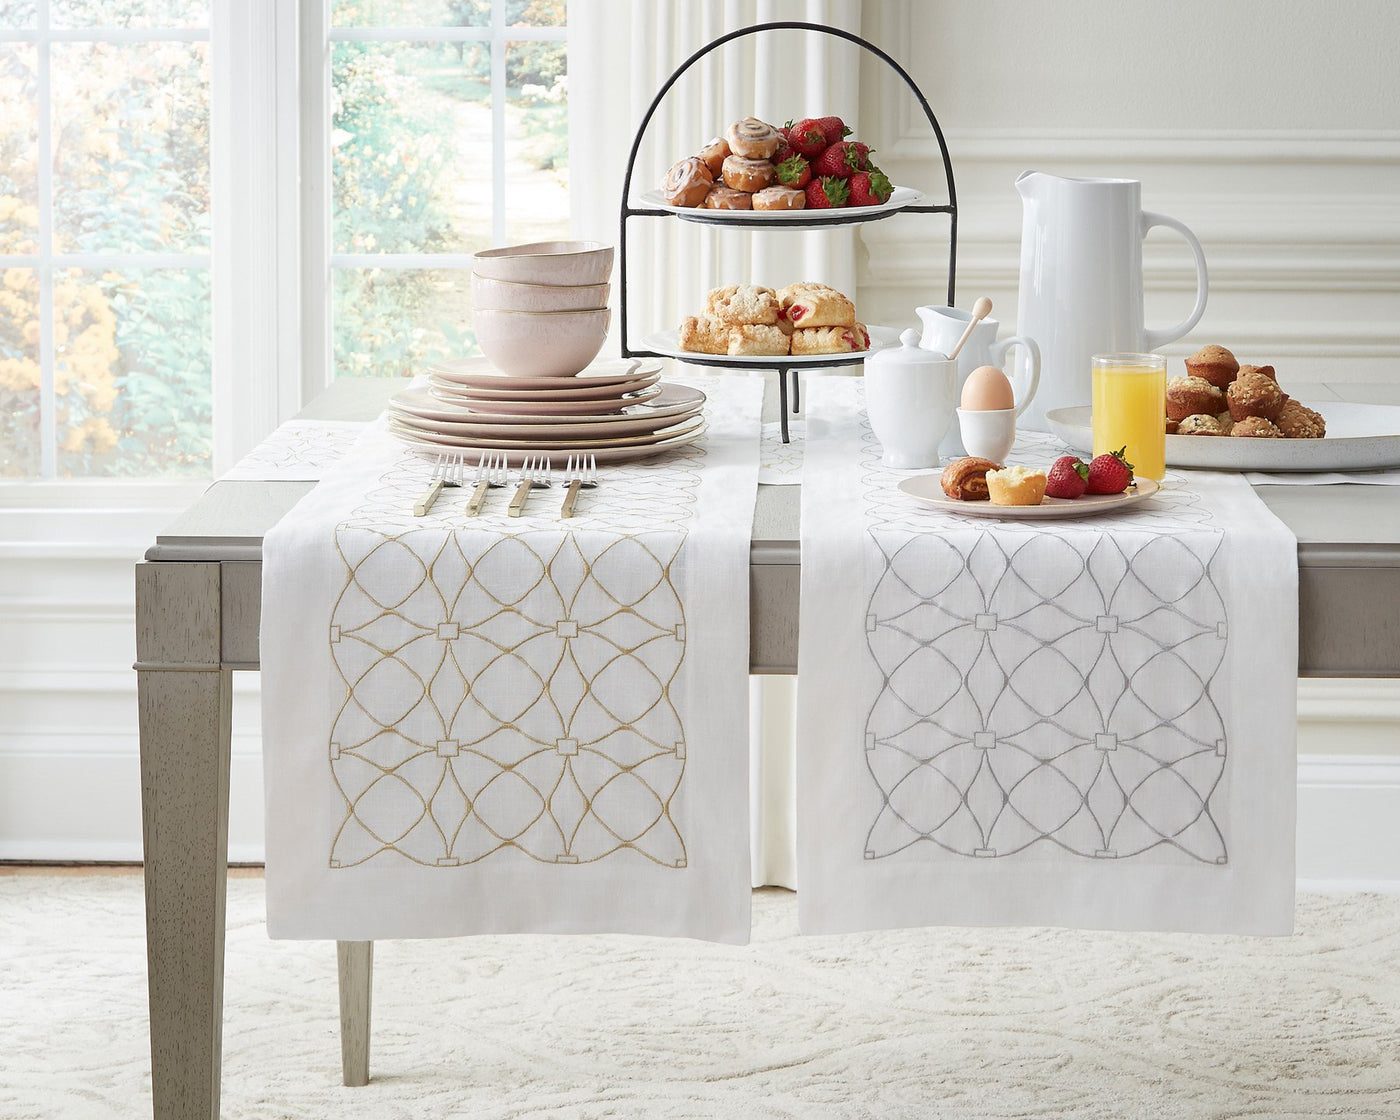 Dutchess Table Linens | Runner